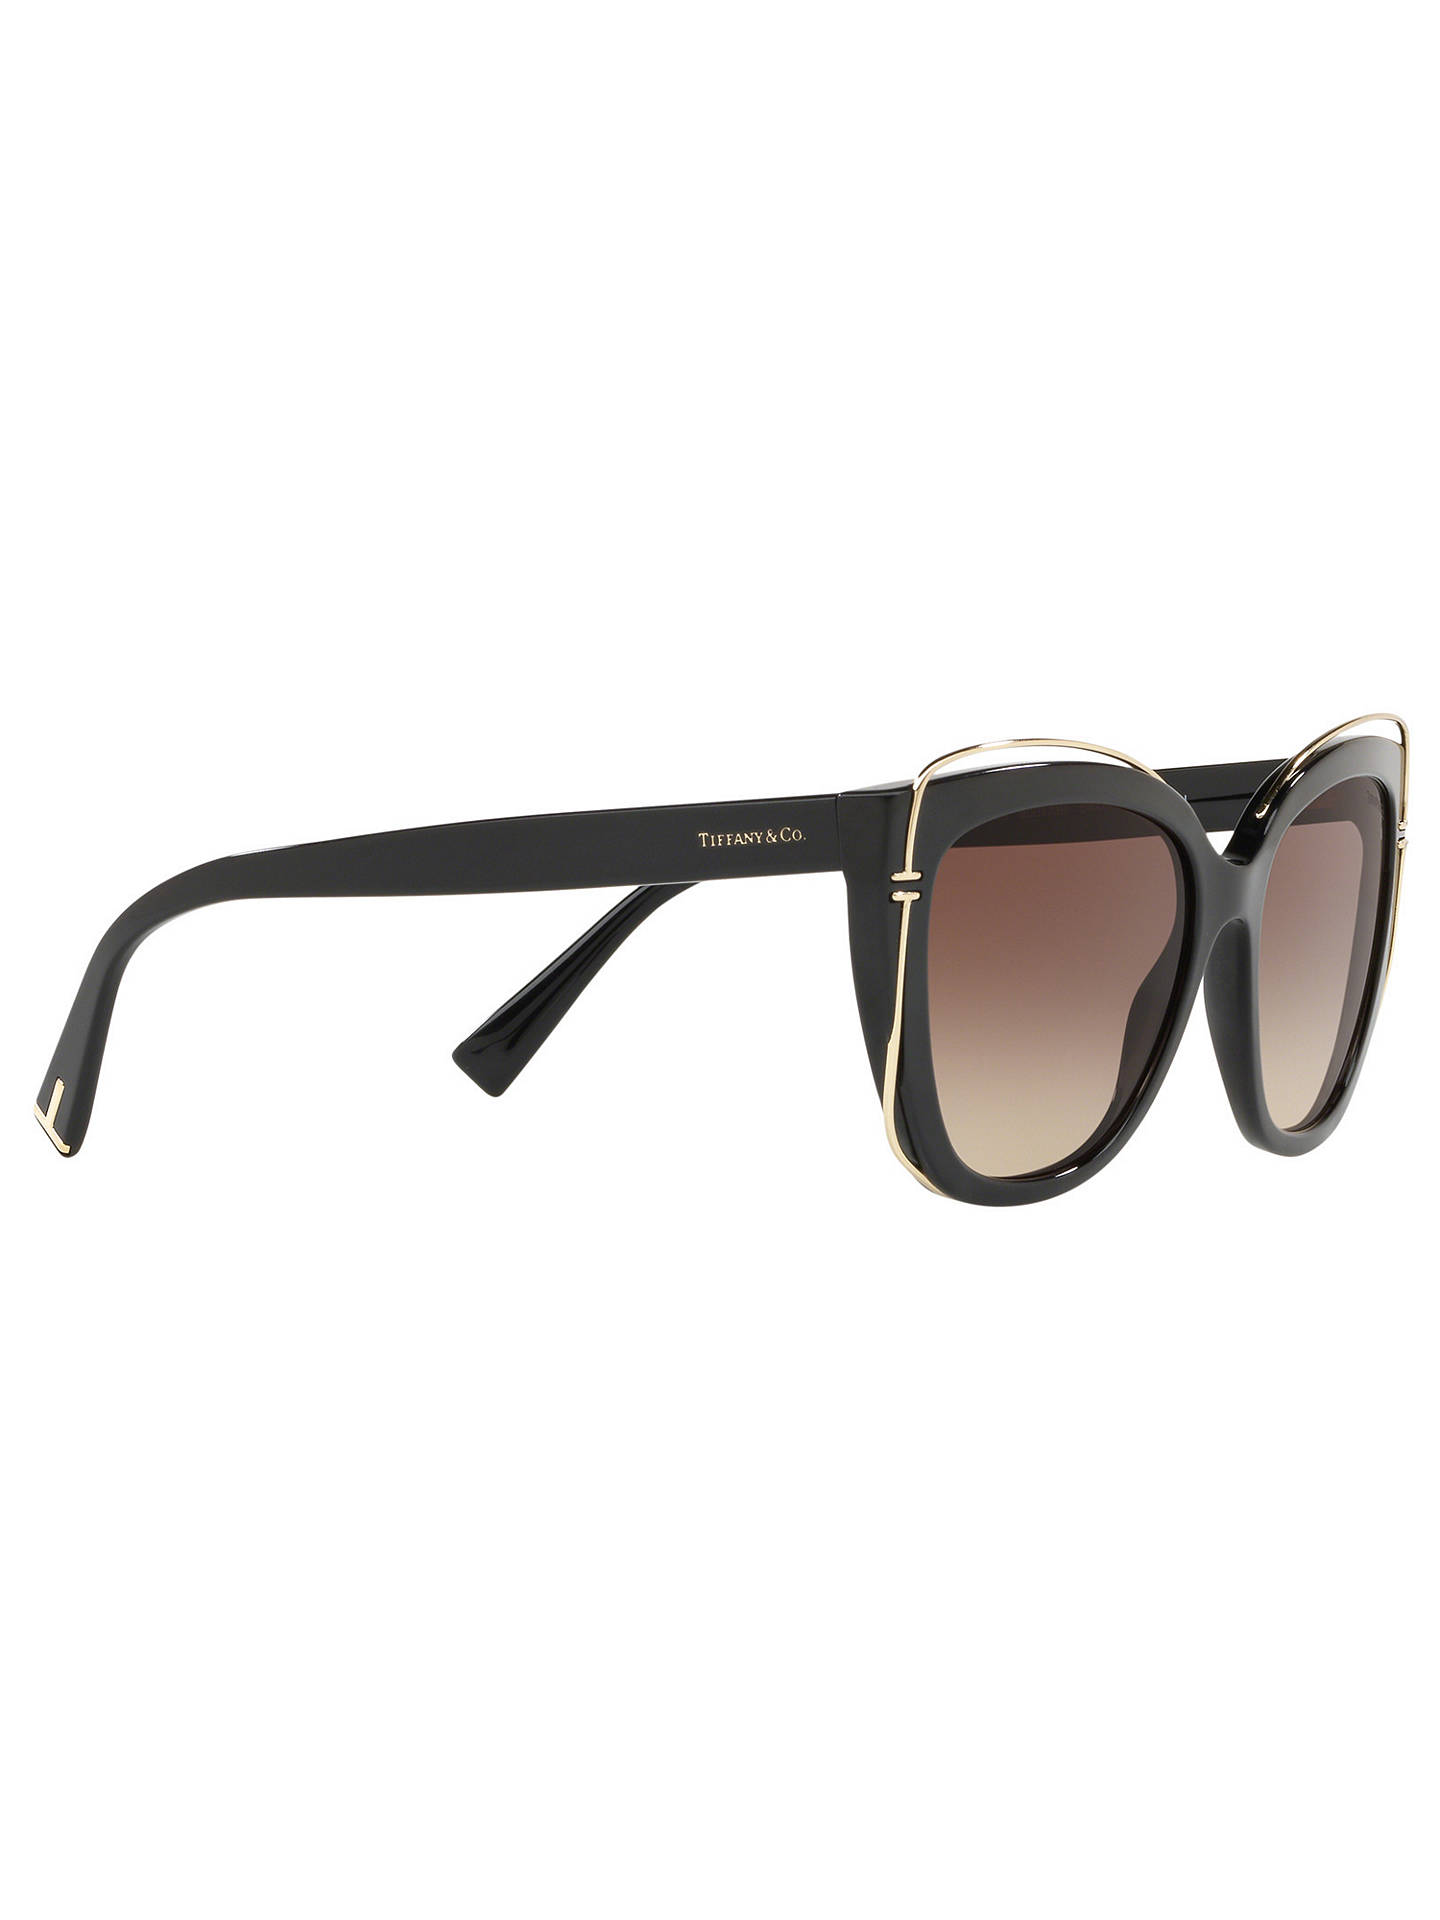 BuyTiffany & Co TF4148 Women's Cat's Eye Sunglasses, Black/Brown Gradient Online at johnlewis.com